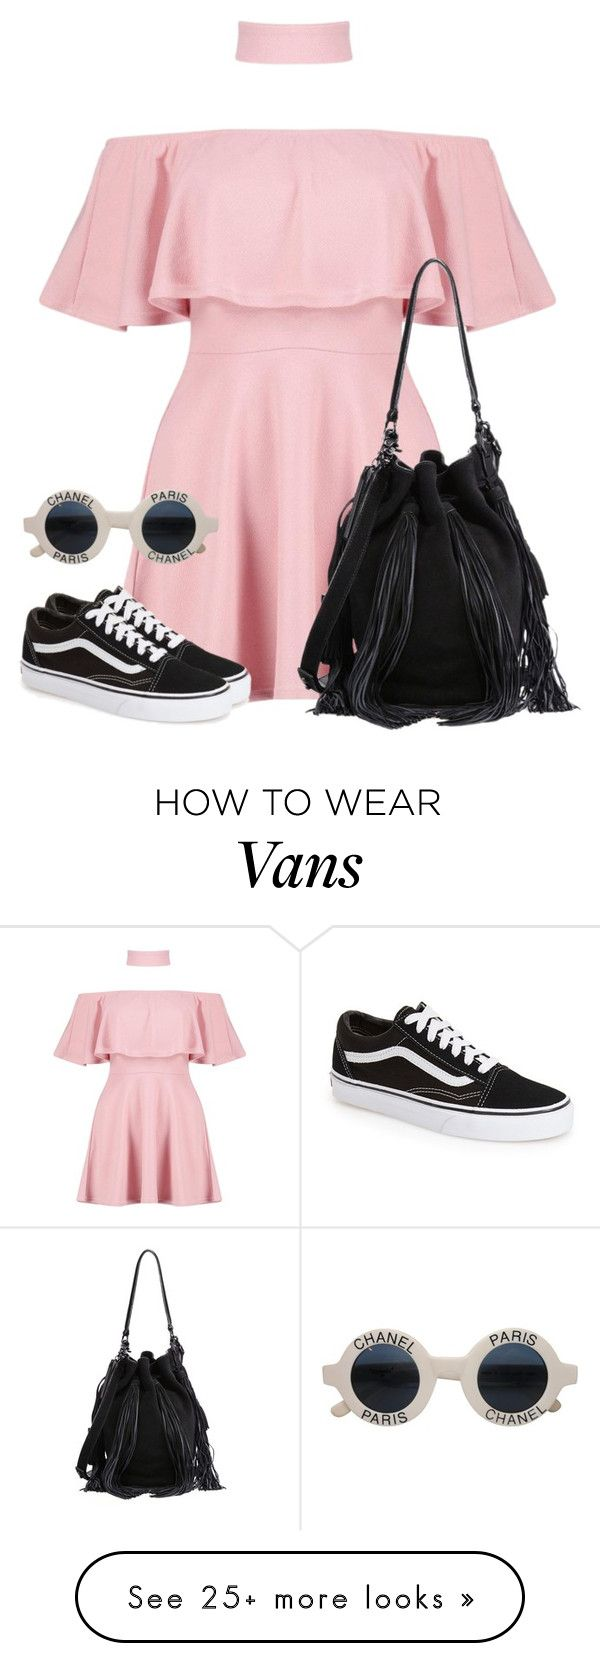 """Untitled #2040"" by i-am-leia on Polyvore featuring Boohoo, Vans, Chanel and Loeffler Randall"